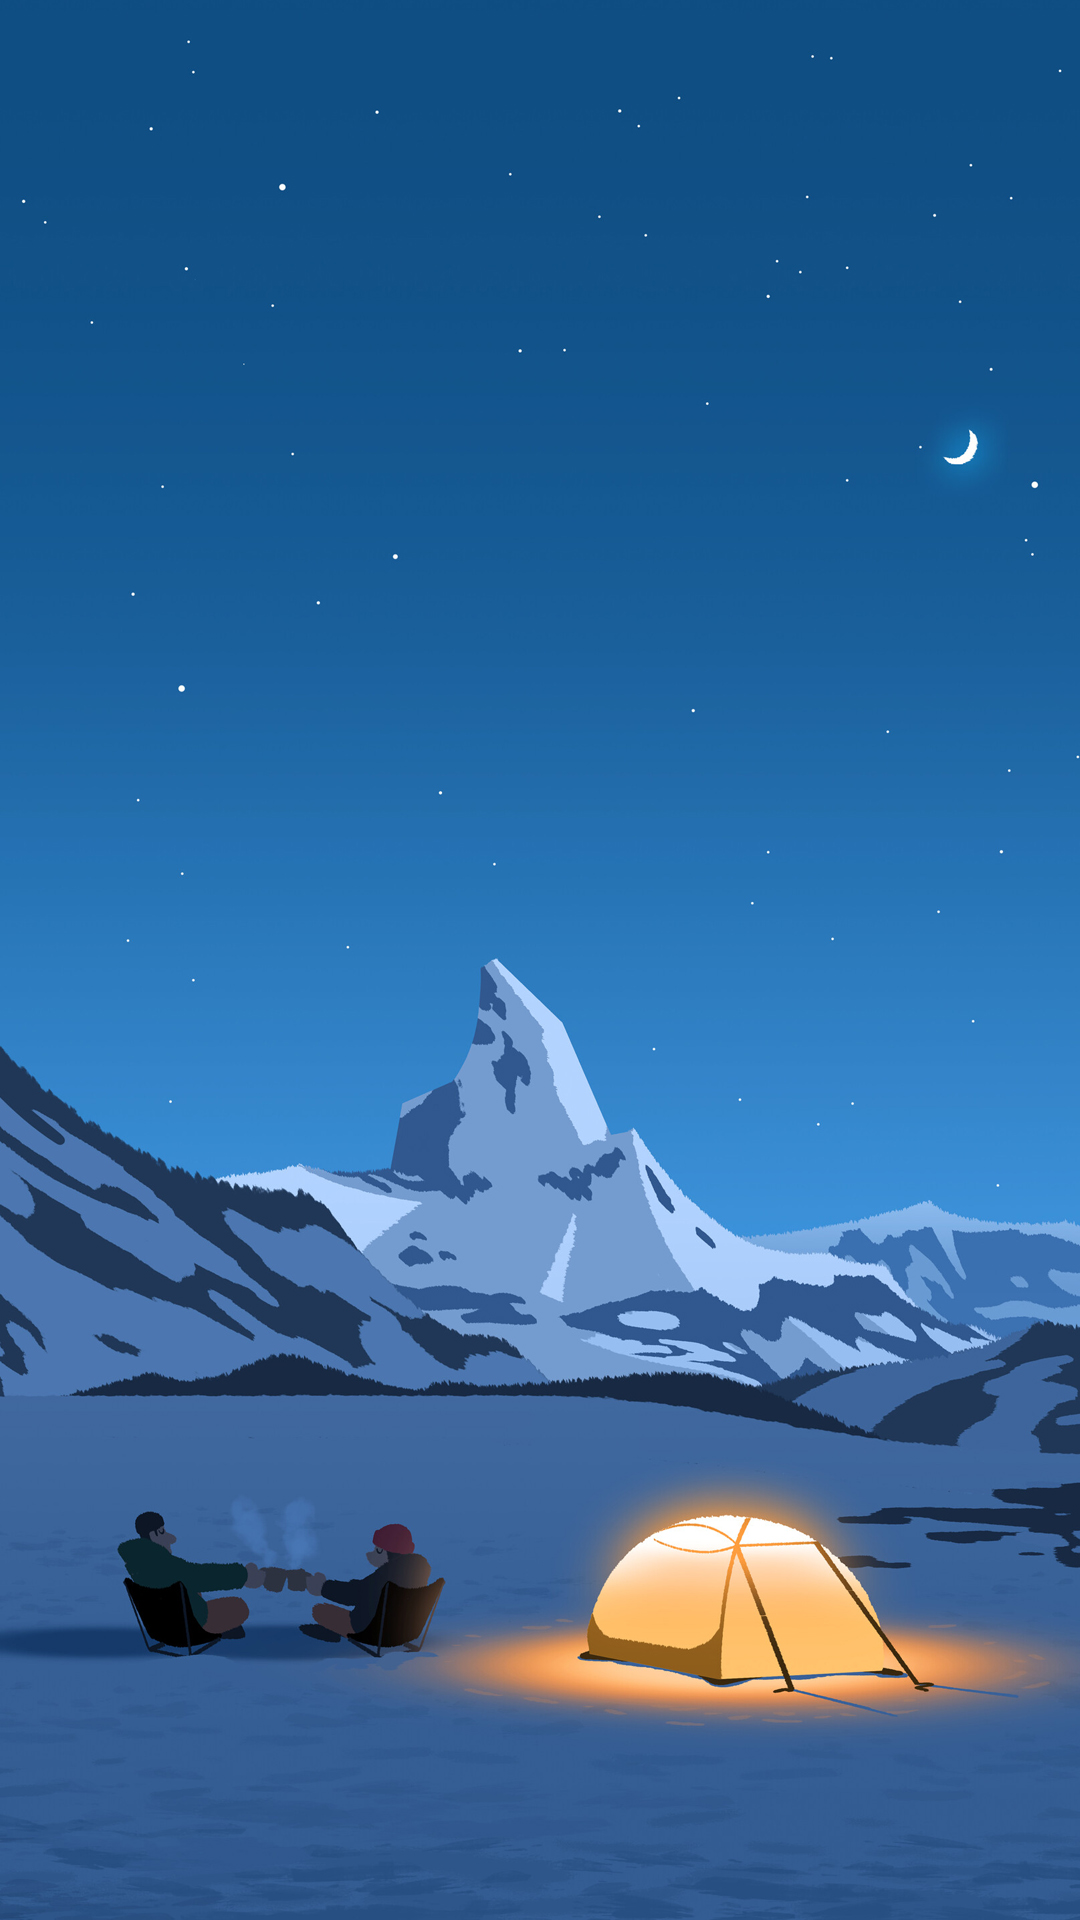 Camping minimal mobile wallpaper